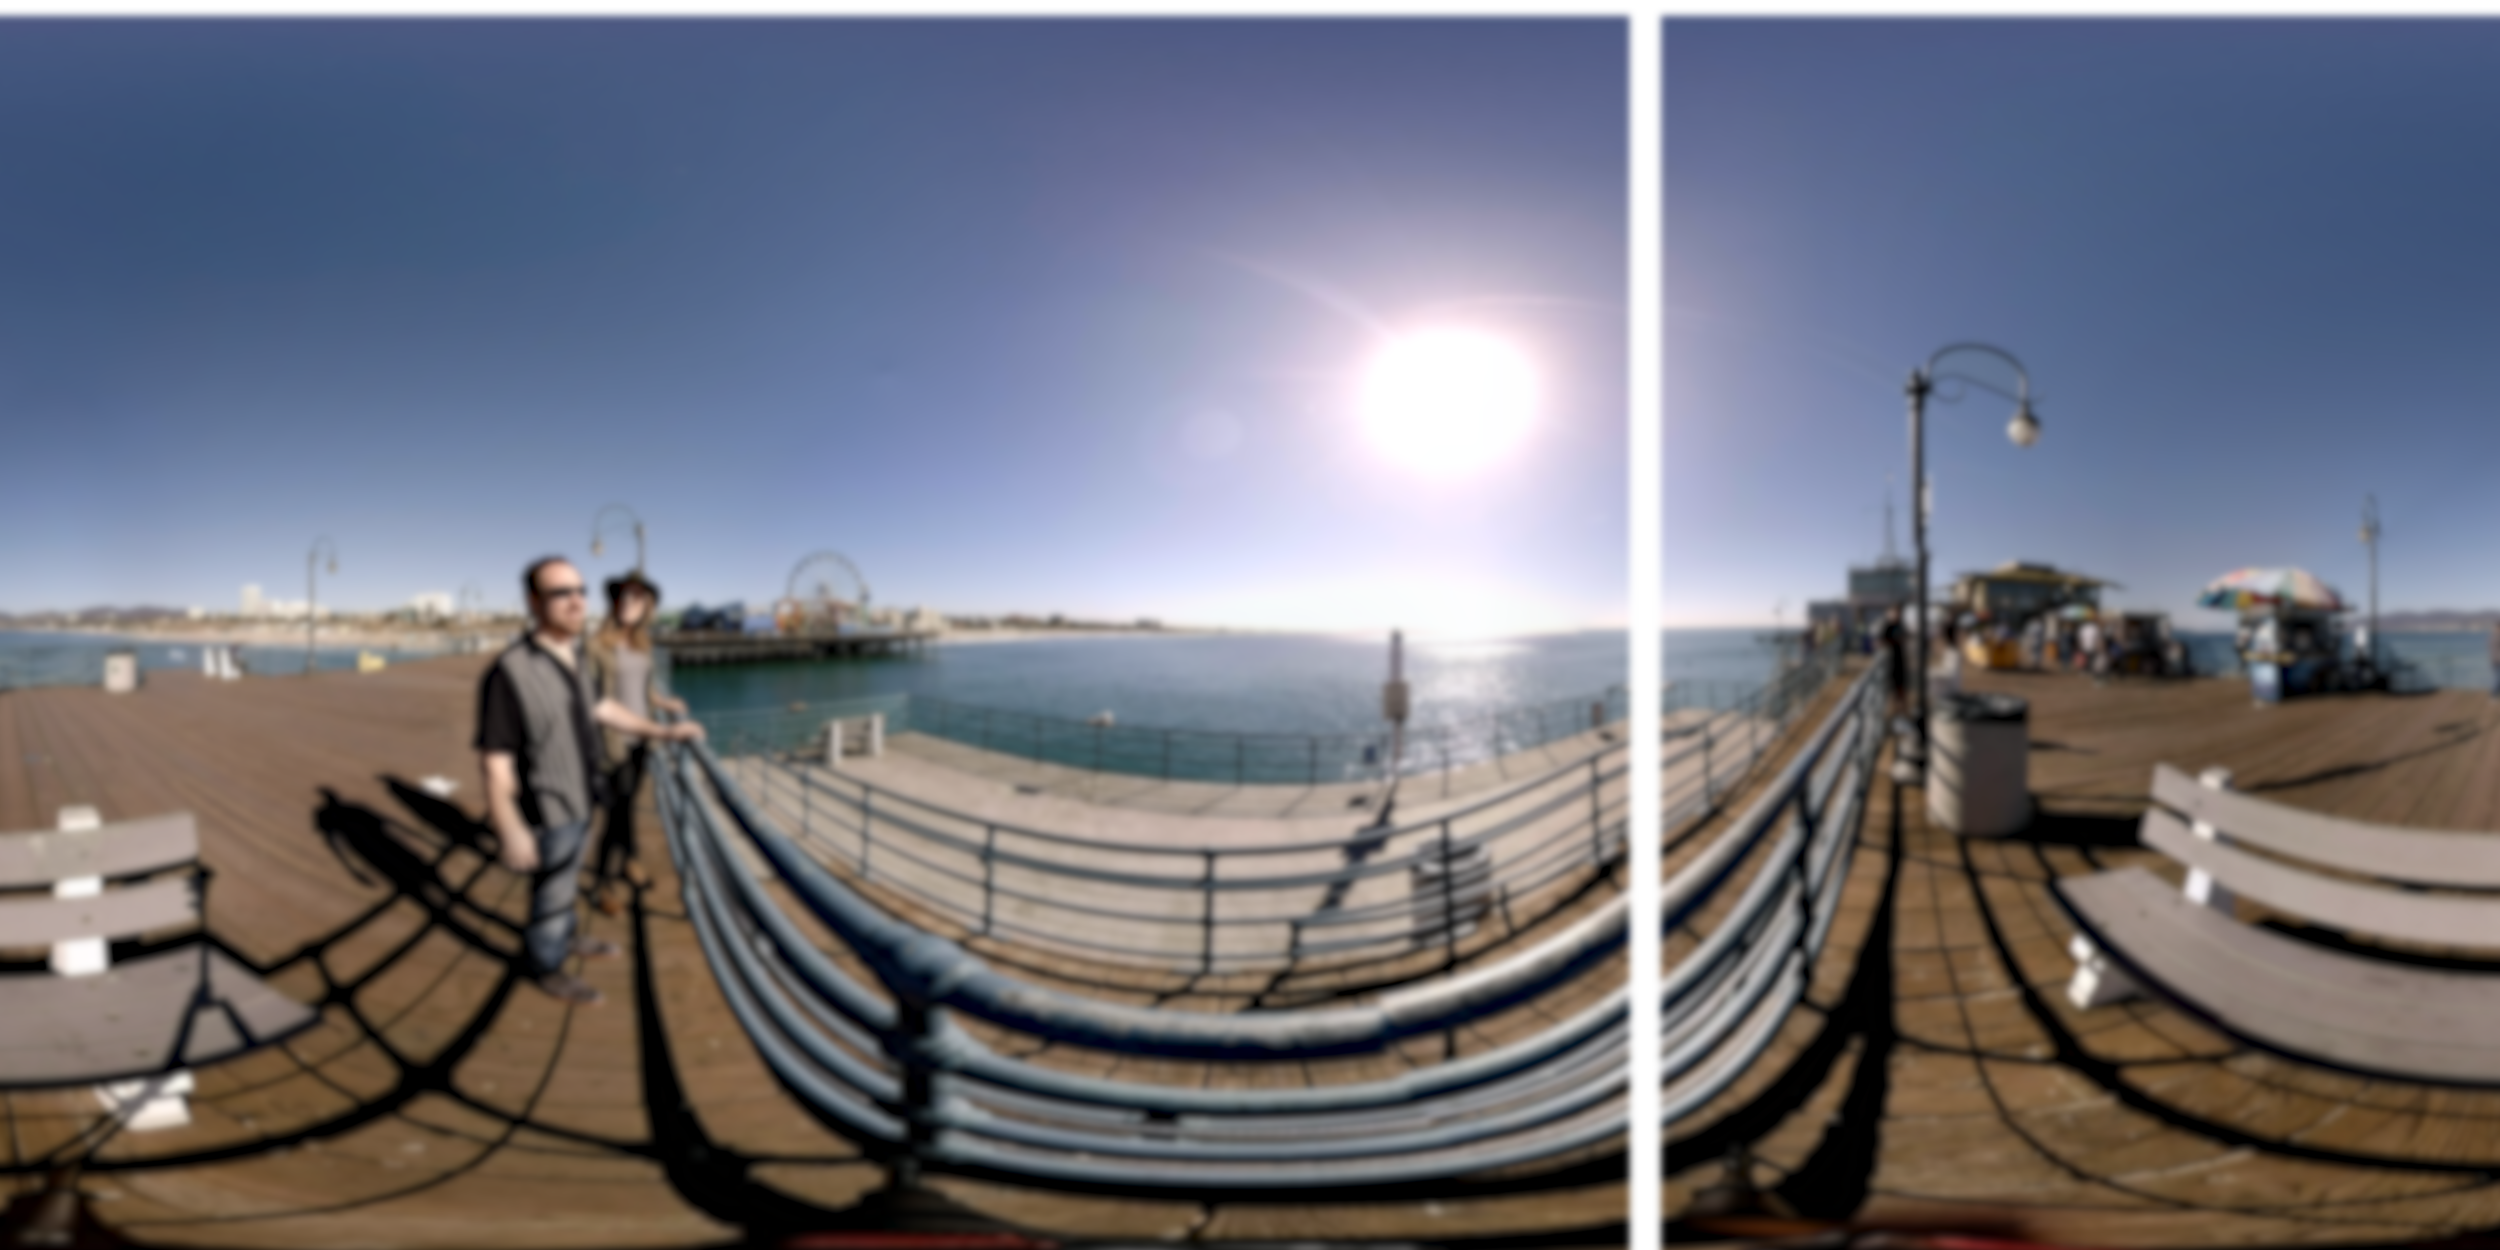 This image was blurred and then the center point was shifted to the right so you can see the line that was created when an ordinary blur filter was applied to a latlong clip.